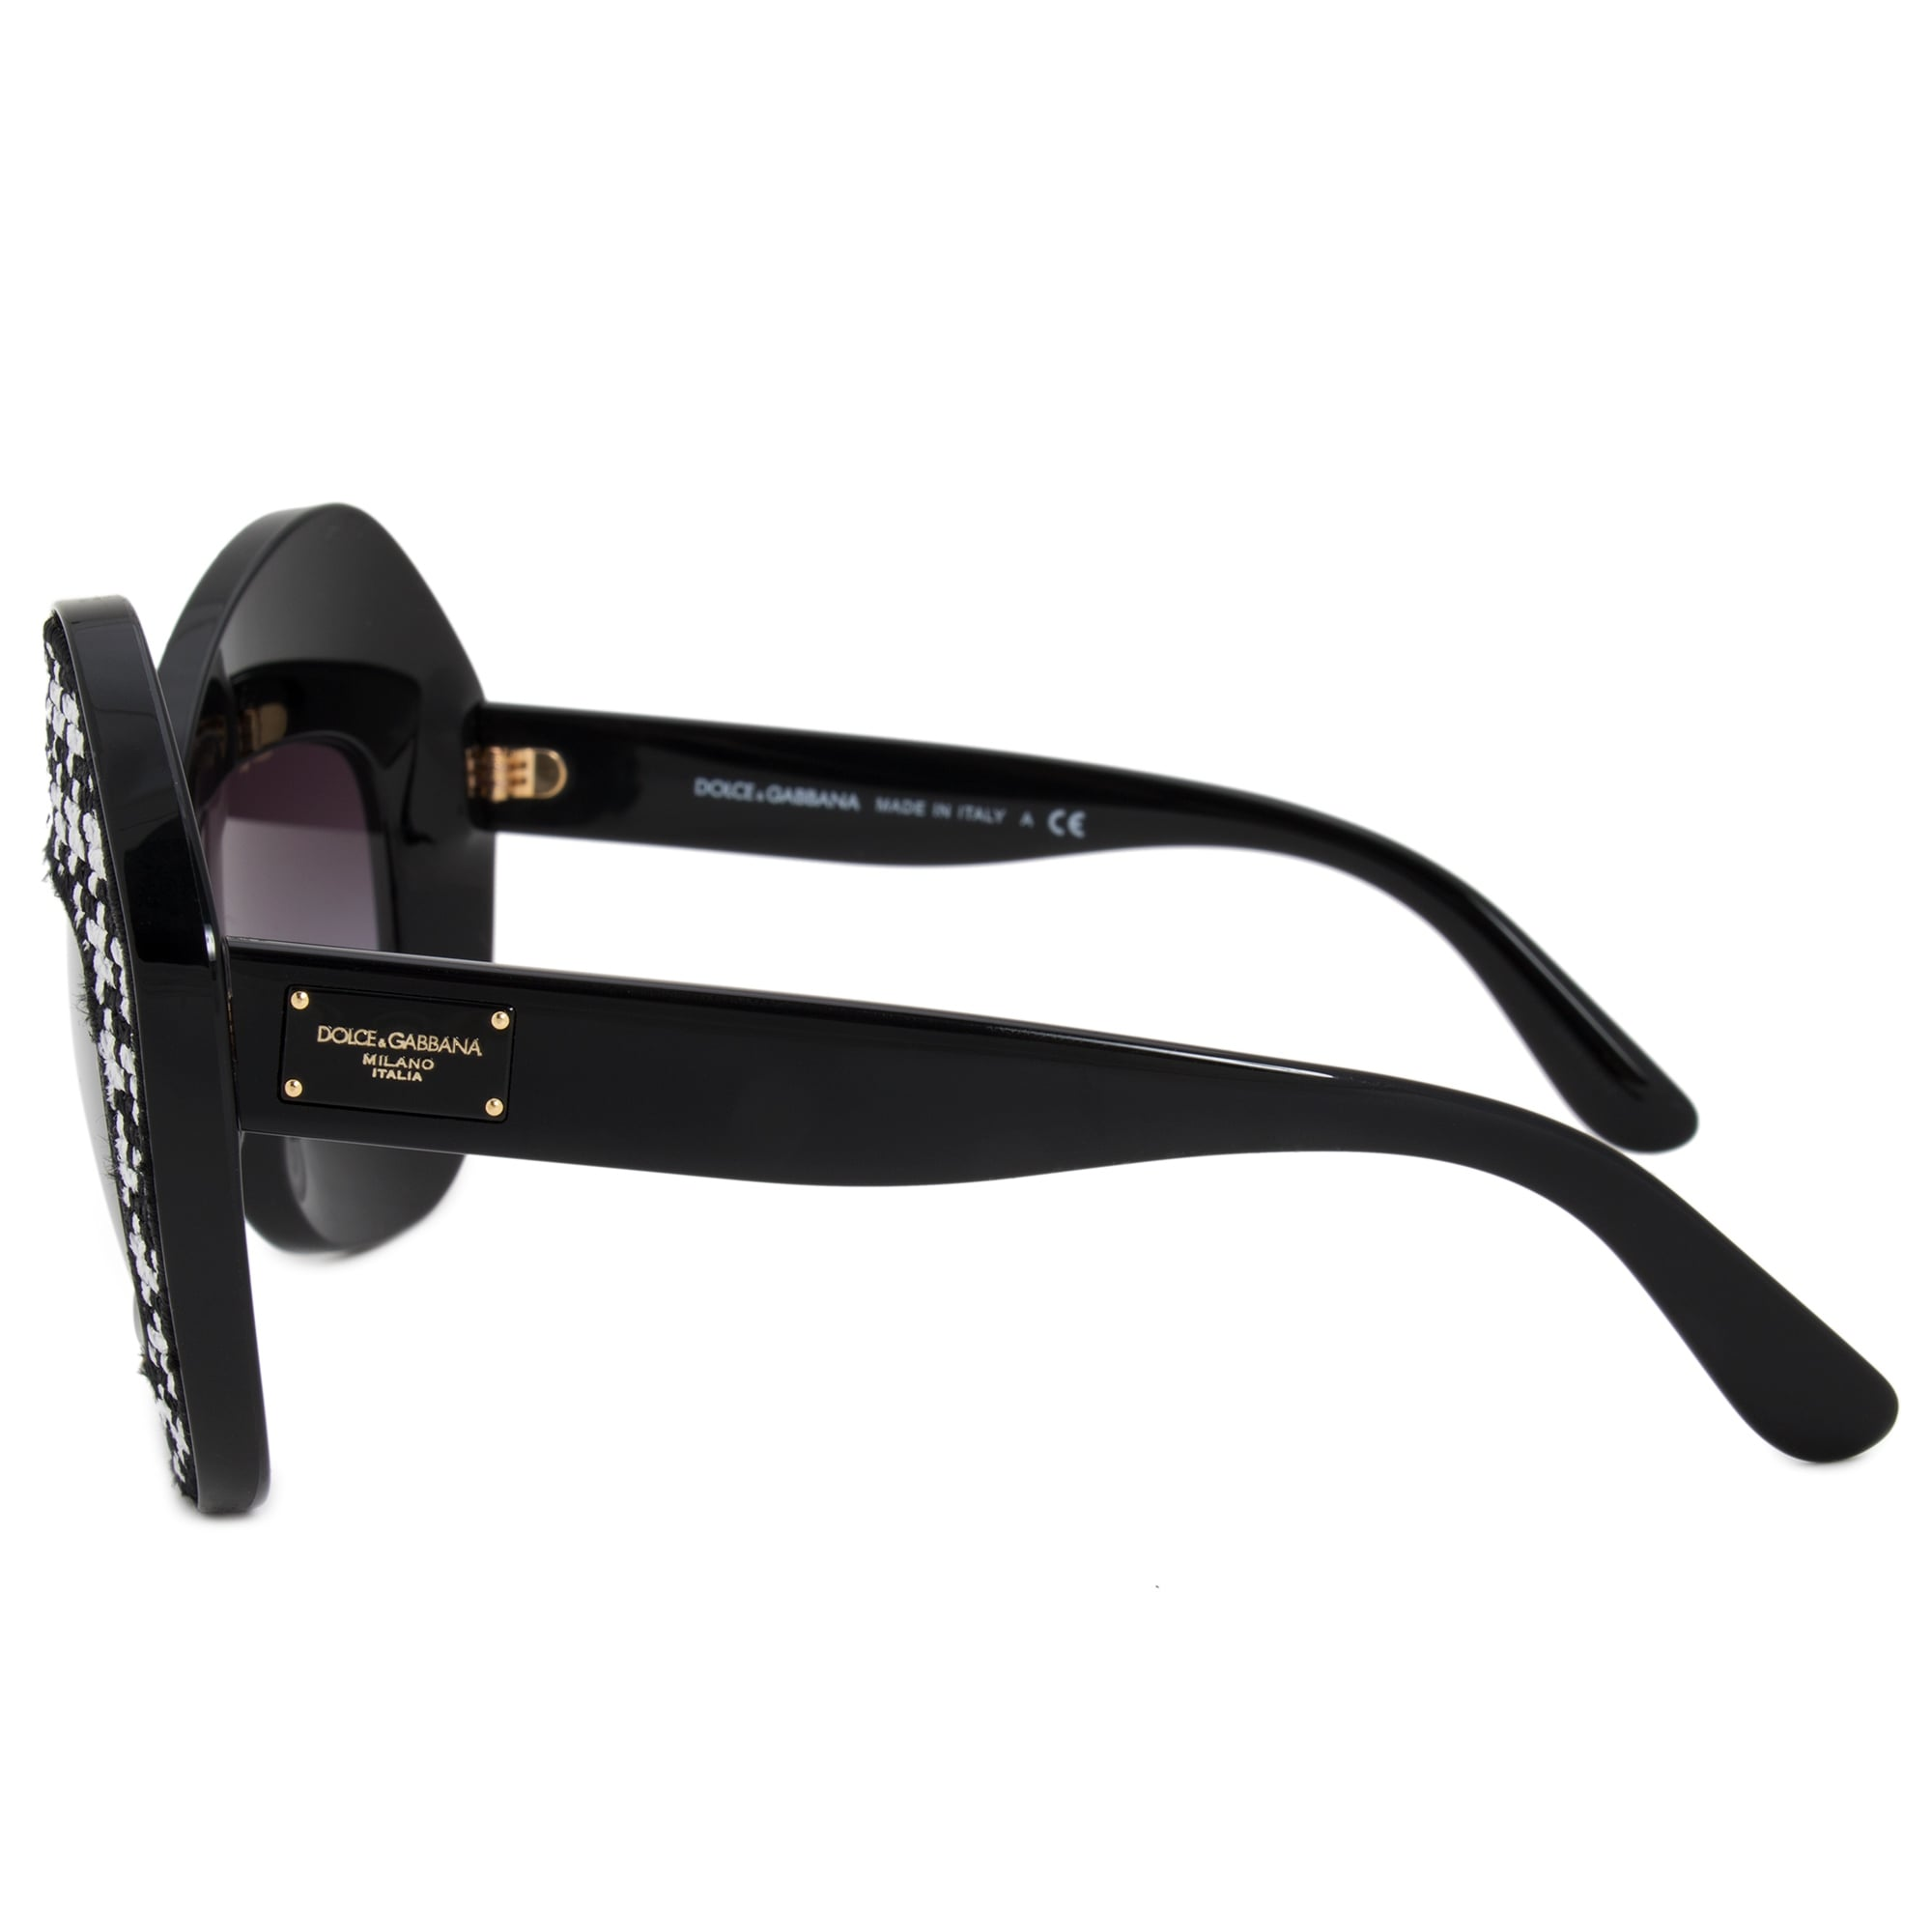 7335f651112 Shop Dolce   Gabbana Cat Eye Sunglasses DG6108 501 8G 50 - Free Shipping  Today - Overstock - 19622747